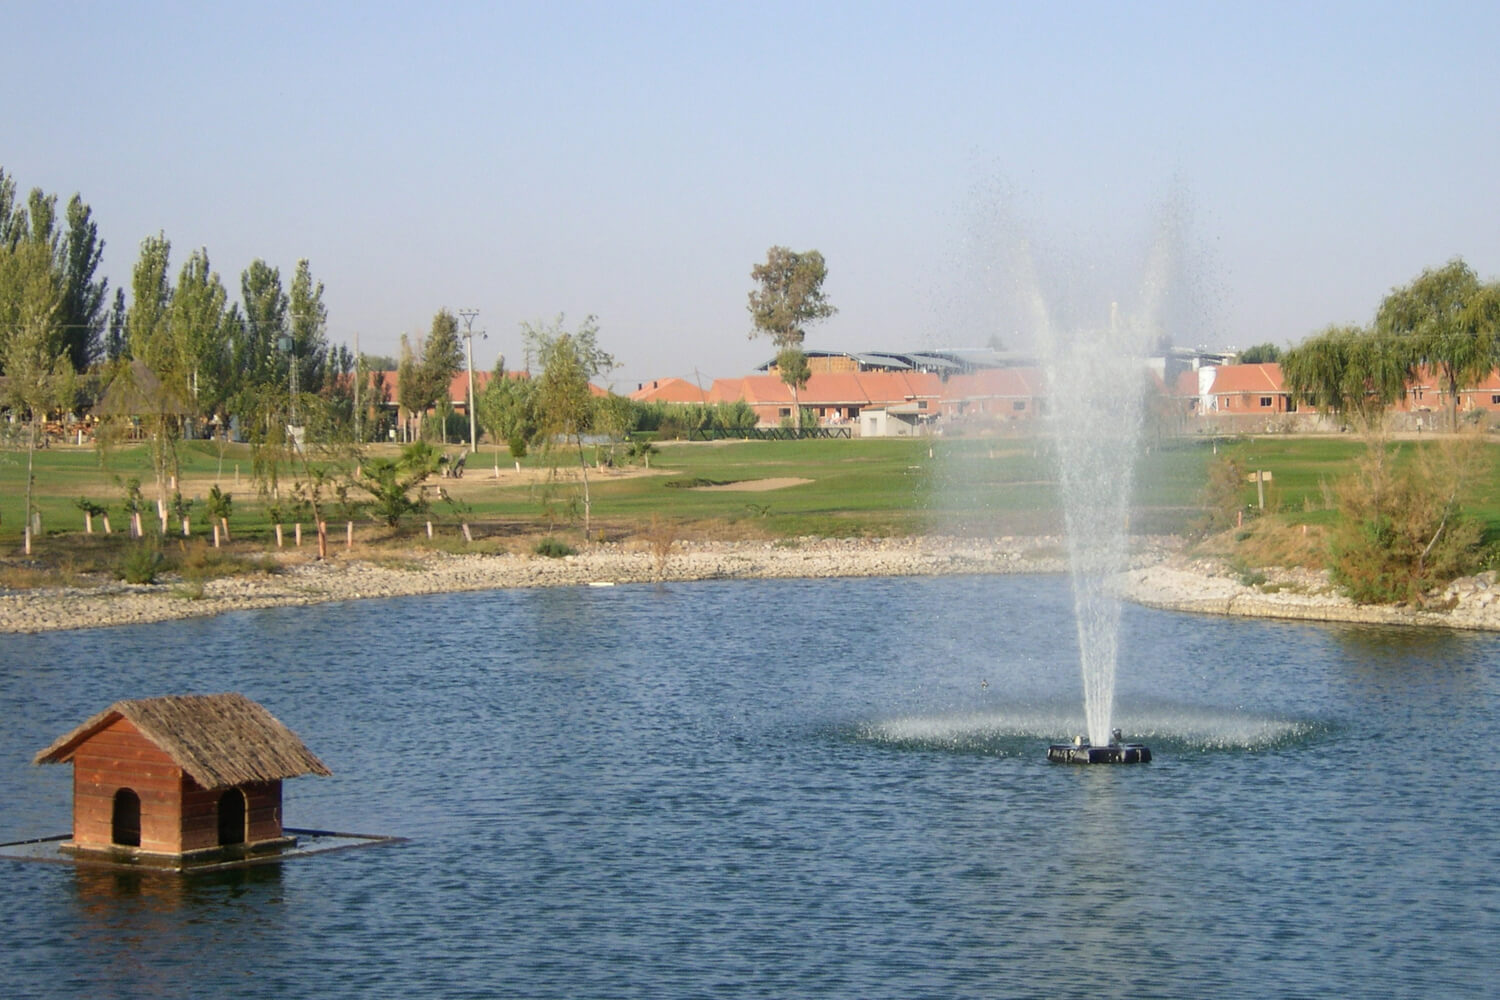 One of Otterbine's Rocket Aerating Geyser Fountains at a resort